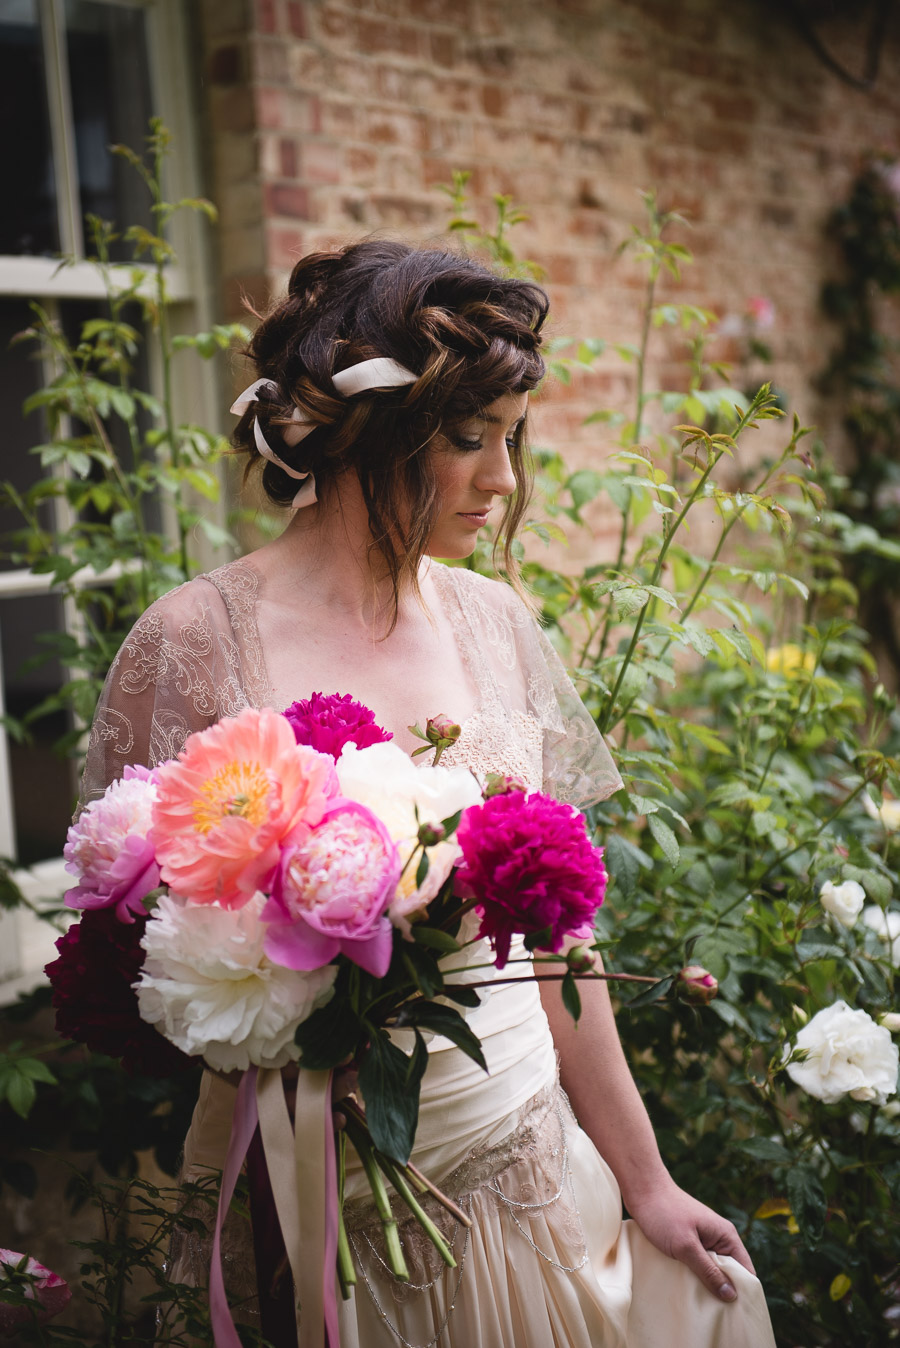 Peony wedding inspiration on the English Wedding Blog, images by Heline Bekker (18)